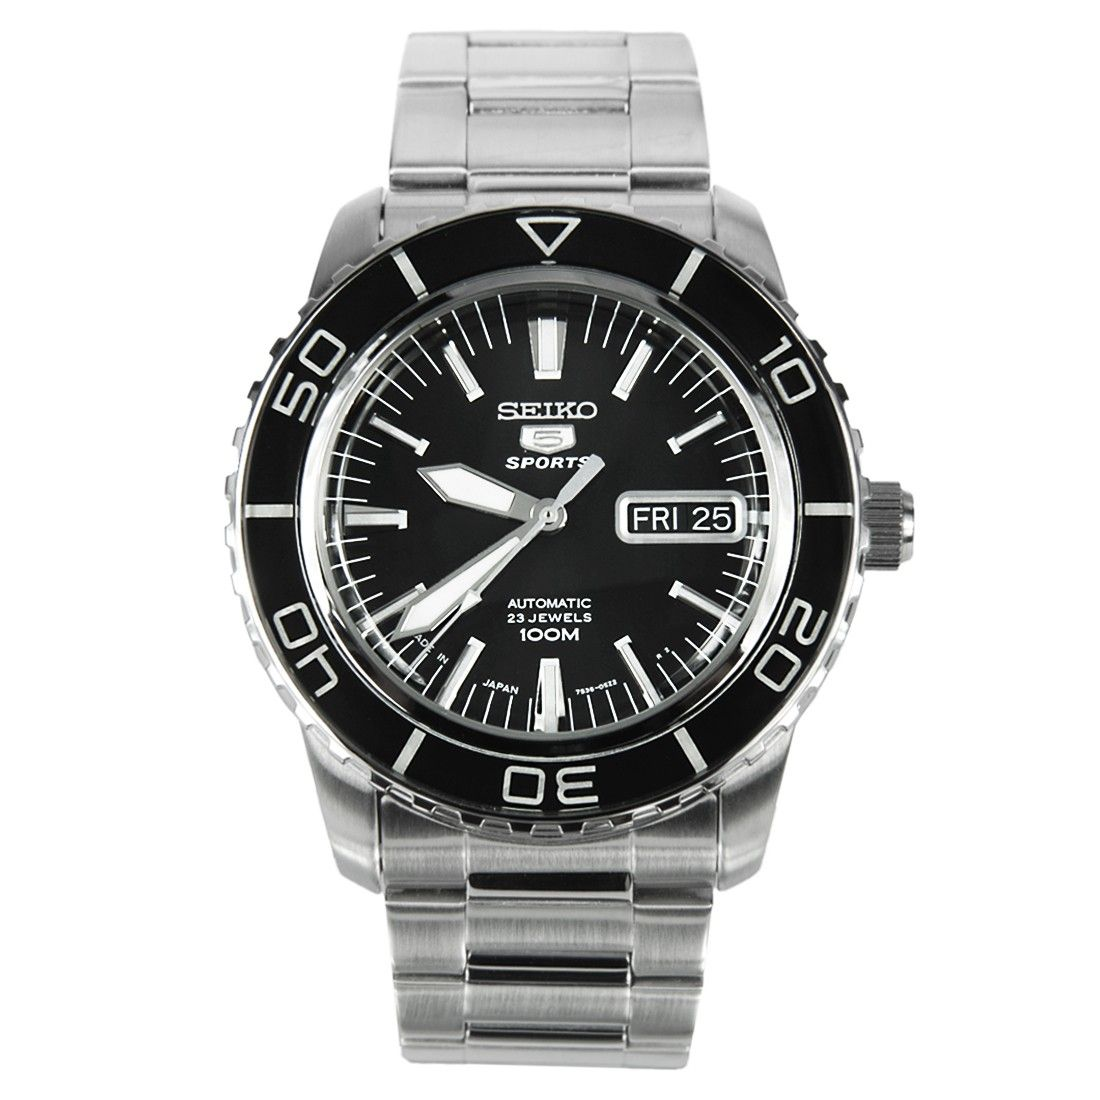 Buy Seiko 5 Sports Automatic Divers Watch SNZH55J1 SNZH55J SNZH55 at lowest price.Free shipping to USA, Singapore, Japan, Malaysia, Australia, New Zealand